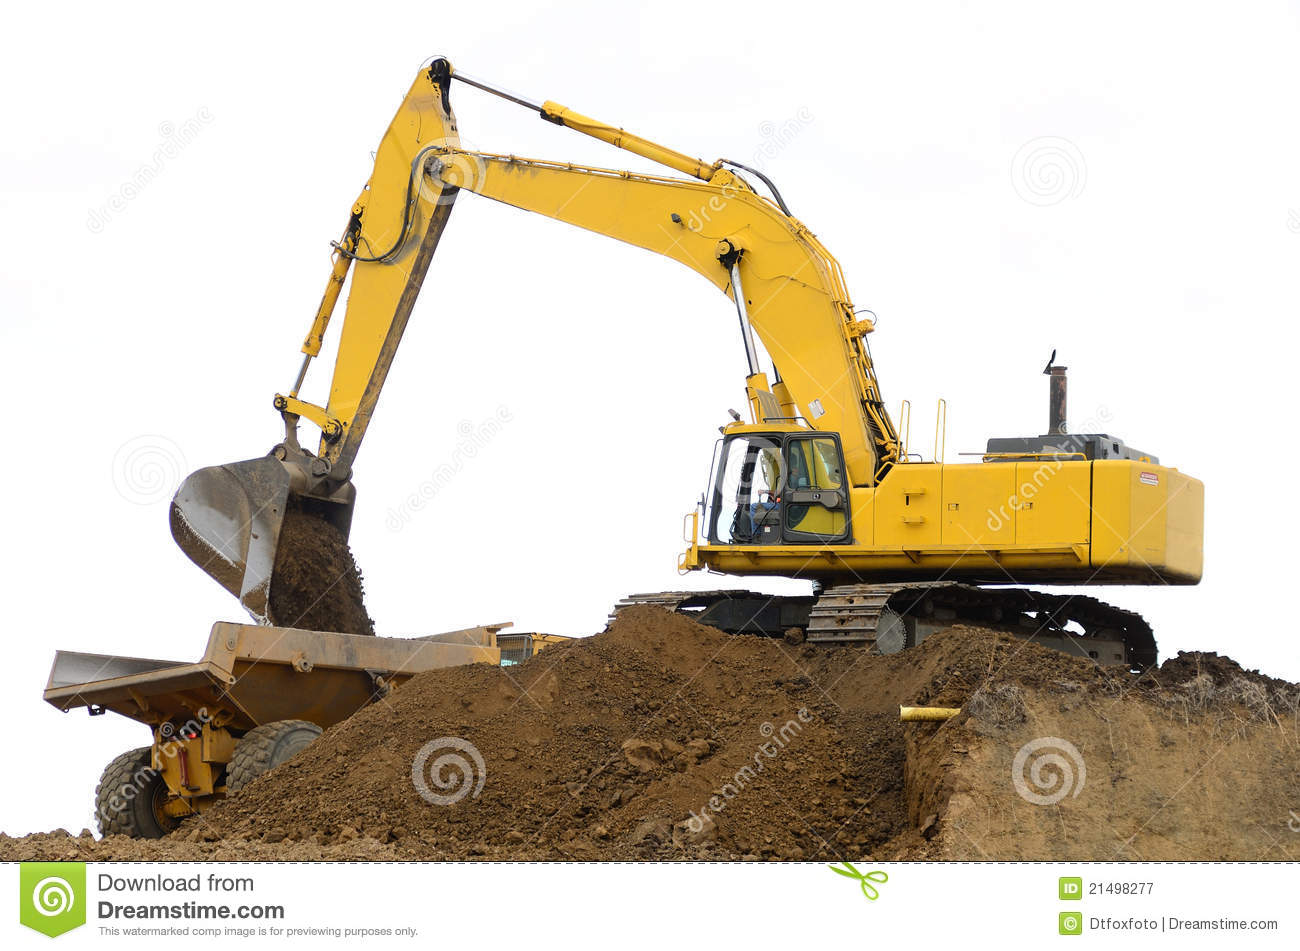 machine that digs holes